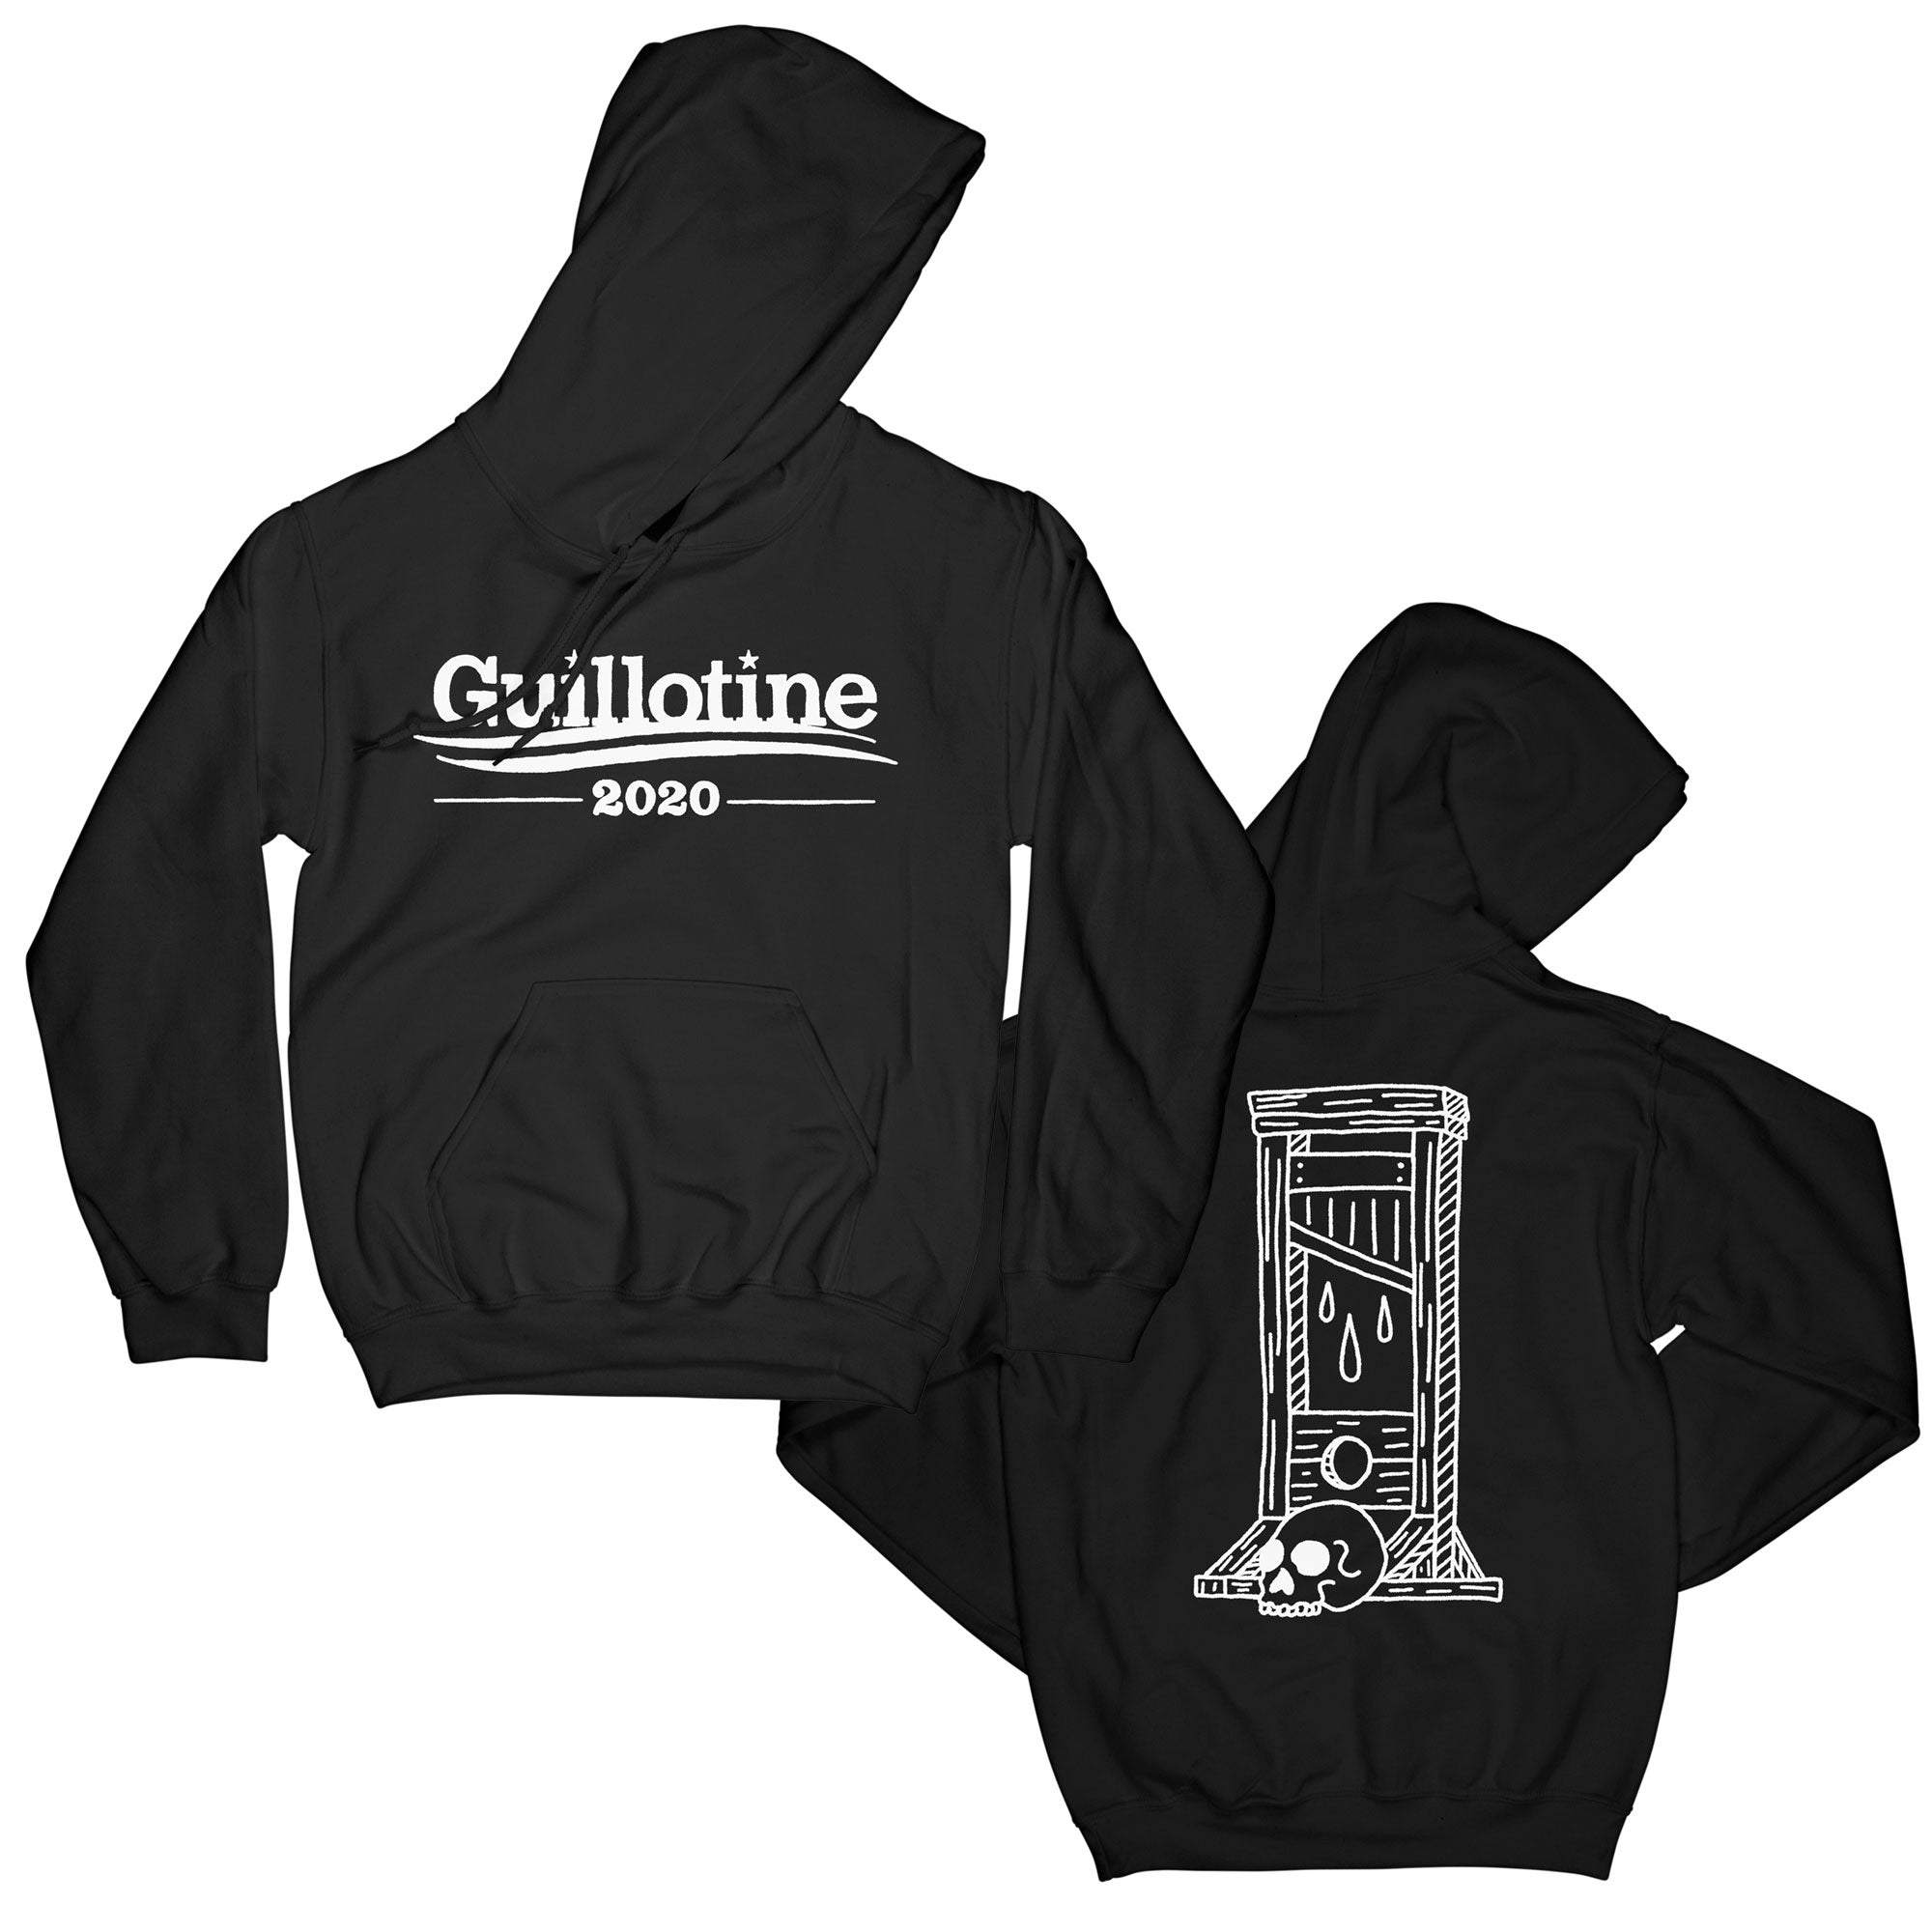 Guillotine 2020 Hooded Sweatshirt